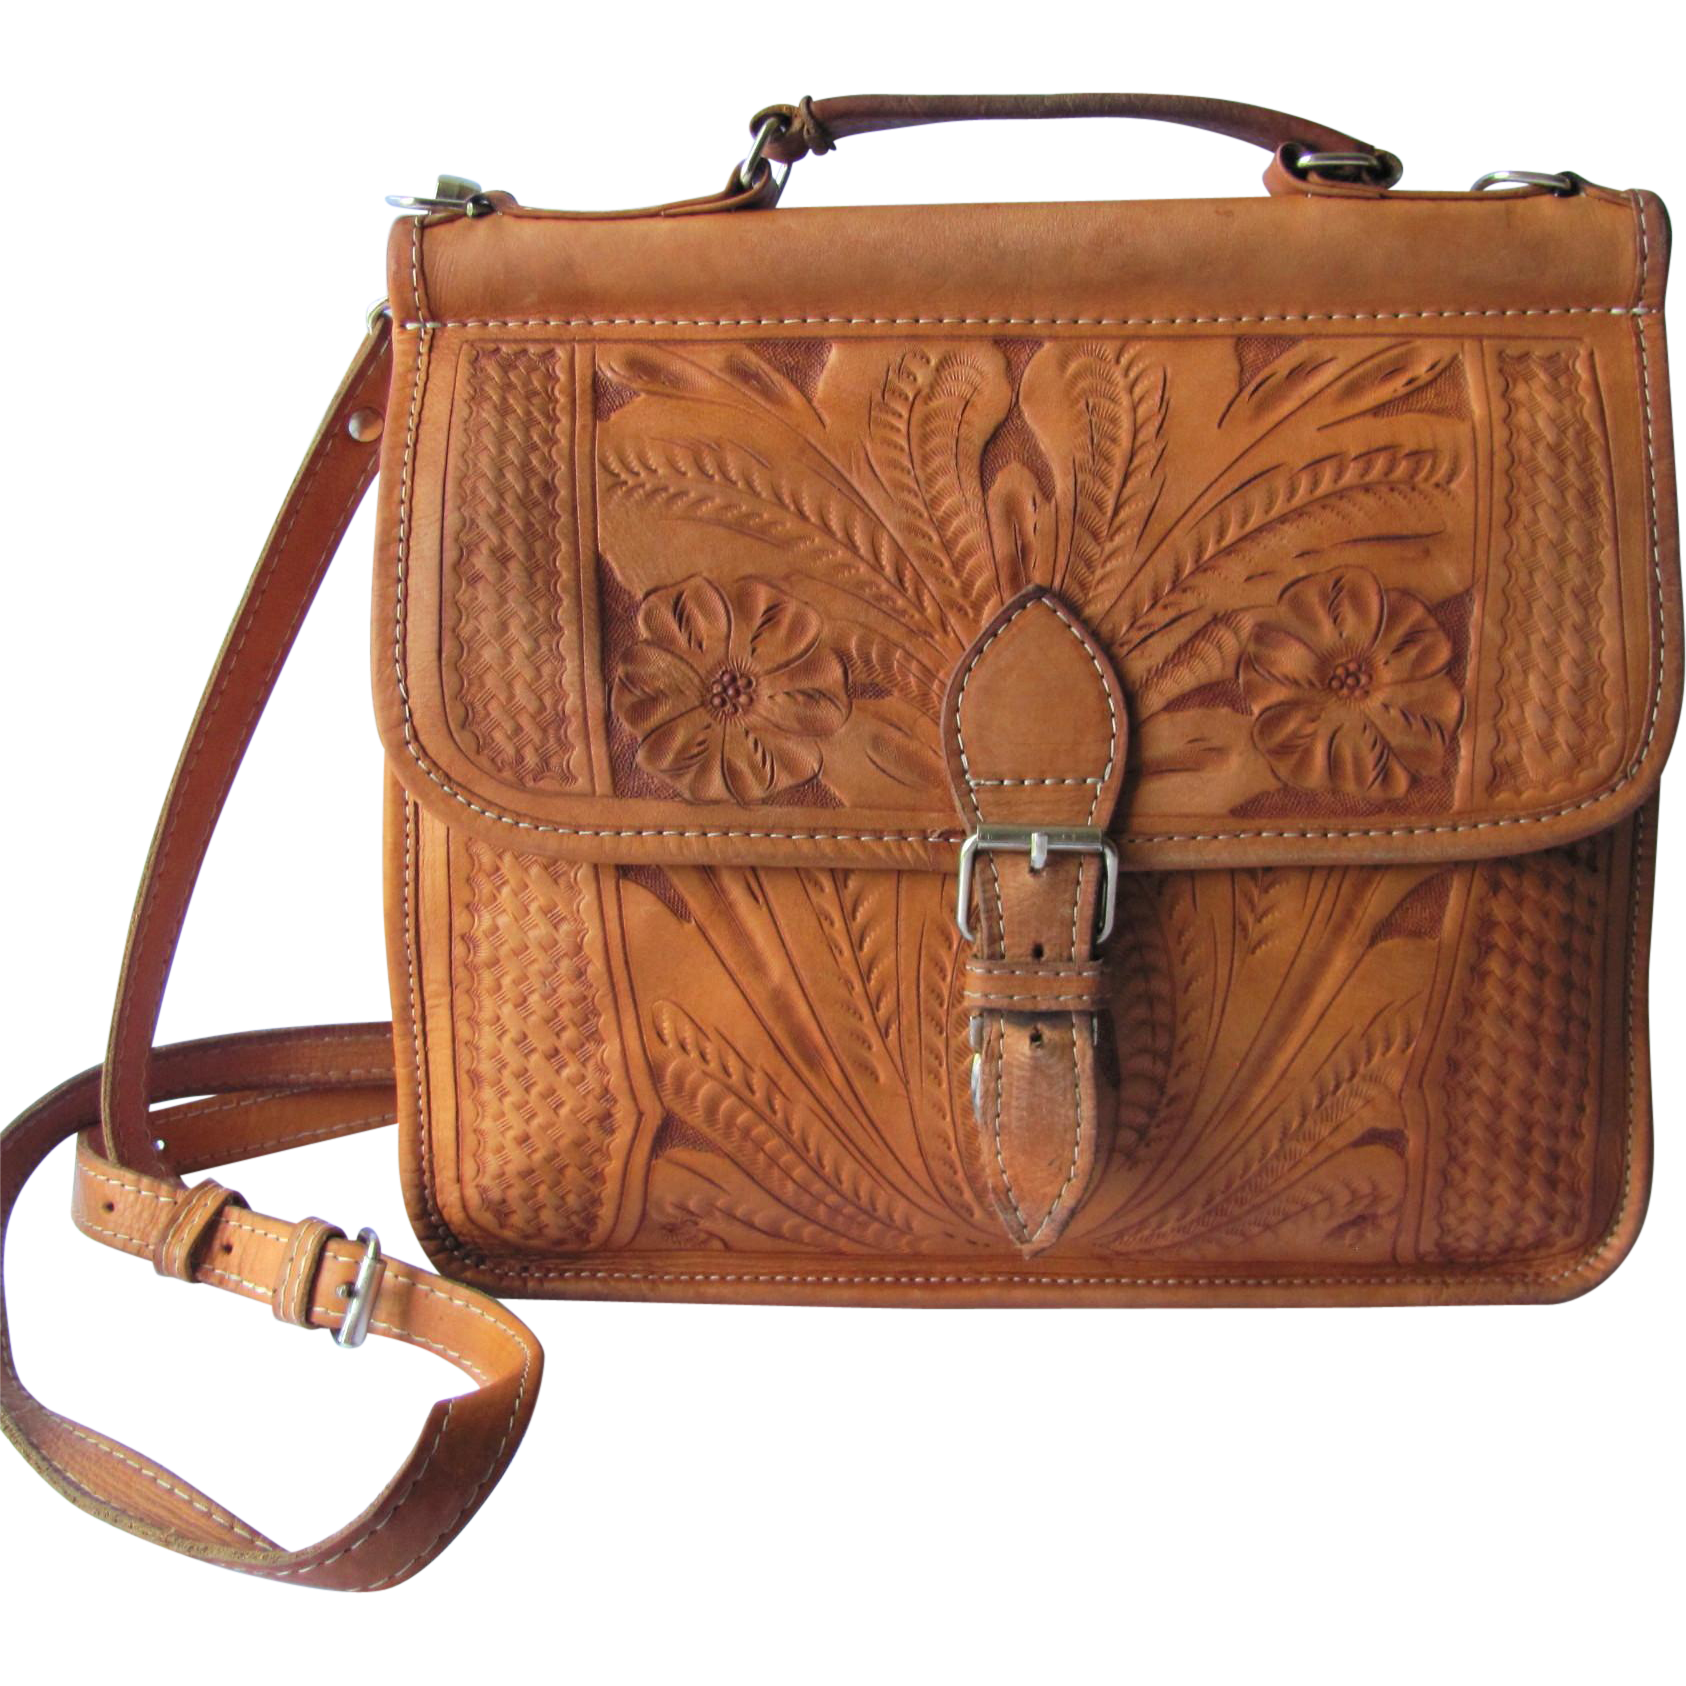 162e13966a Vintage Hand Tooled Leather Handbag in Caramel Color with Cross-Body  Convertible Strap